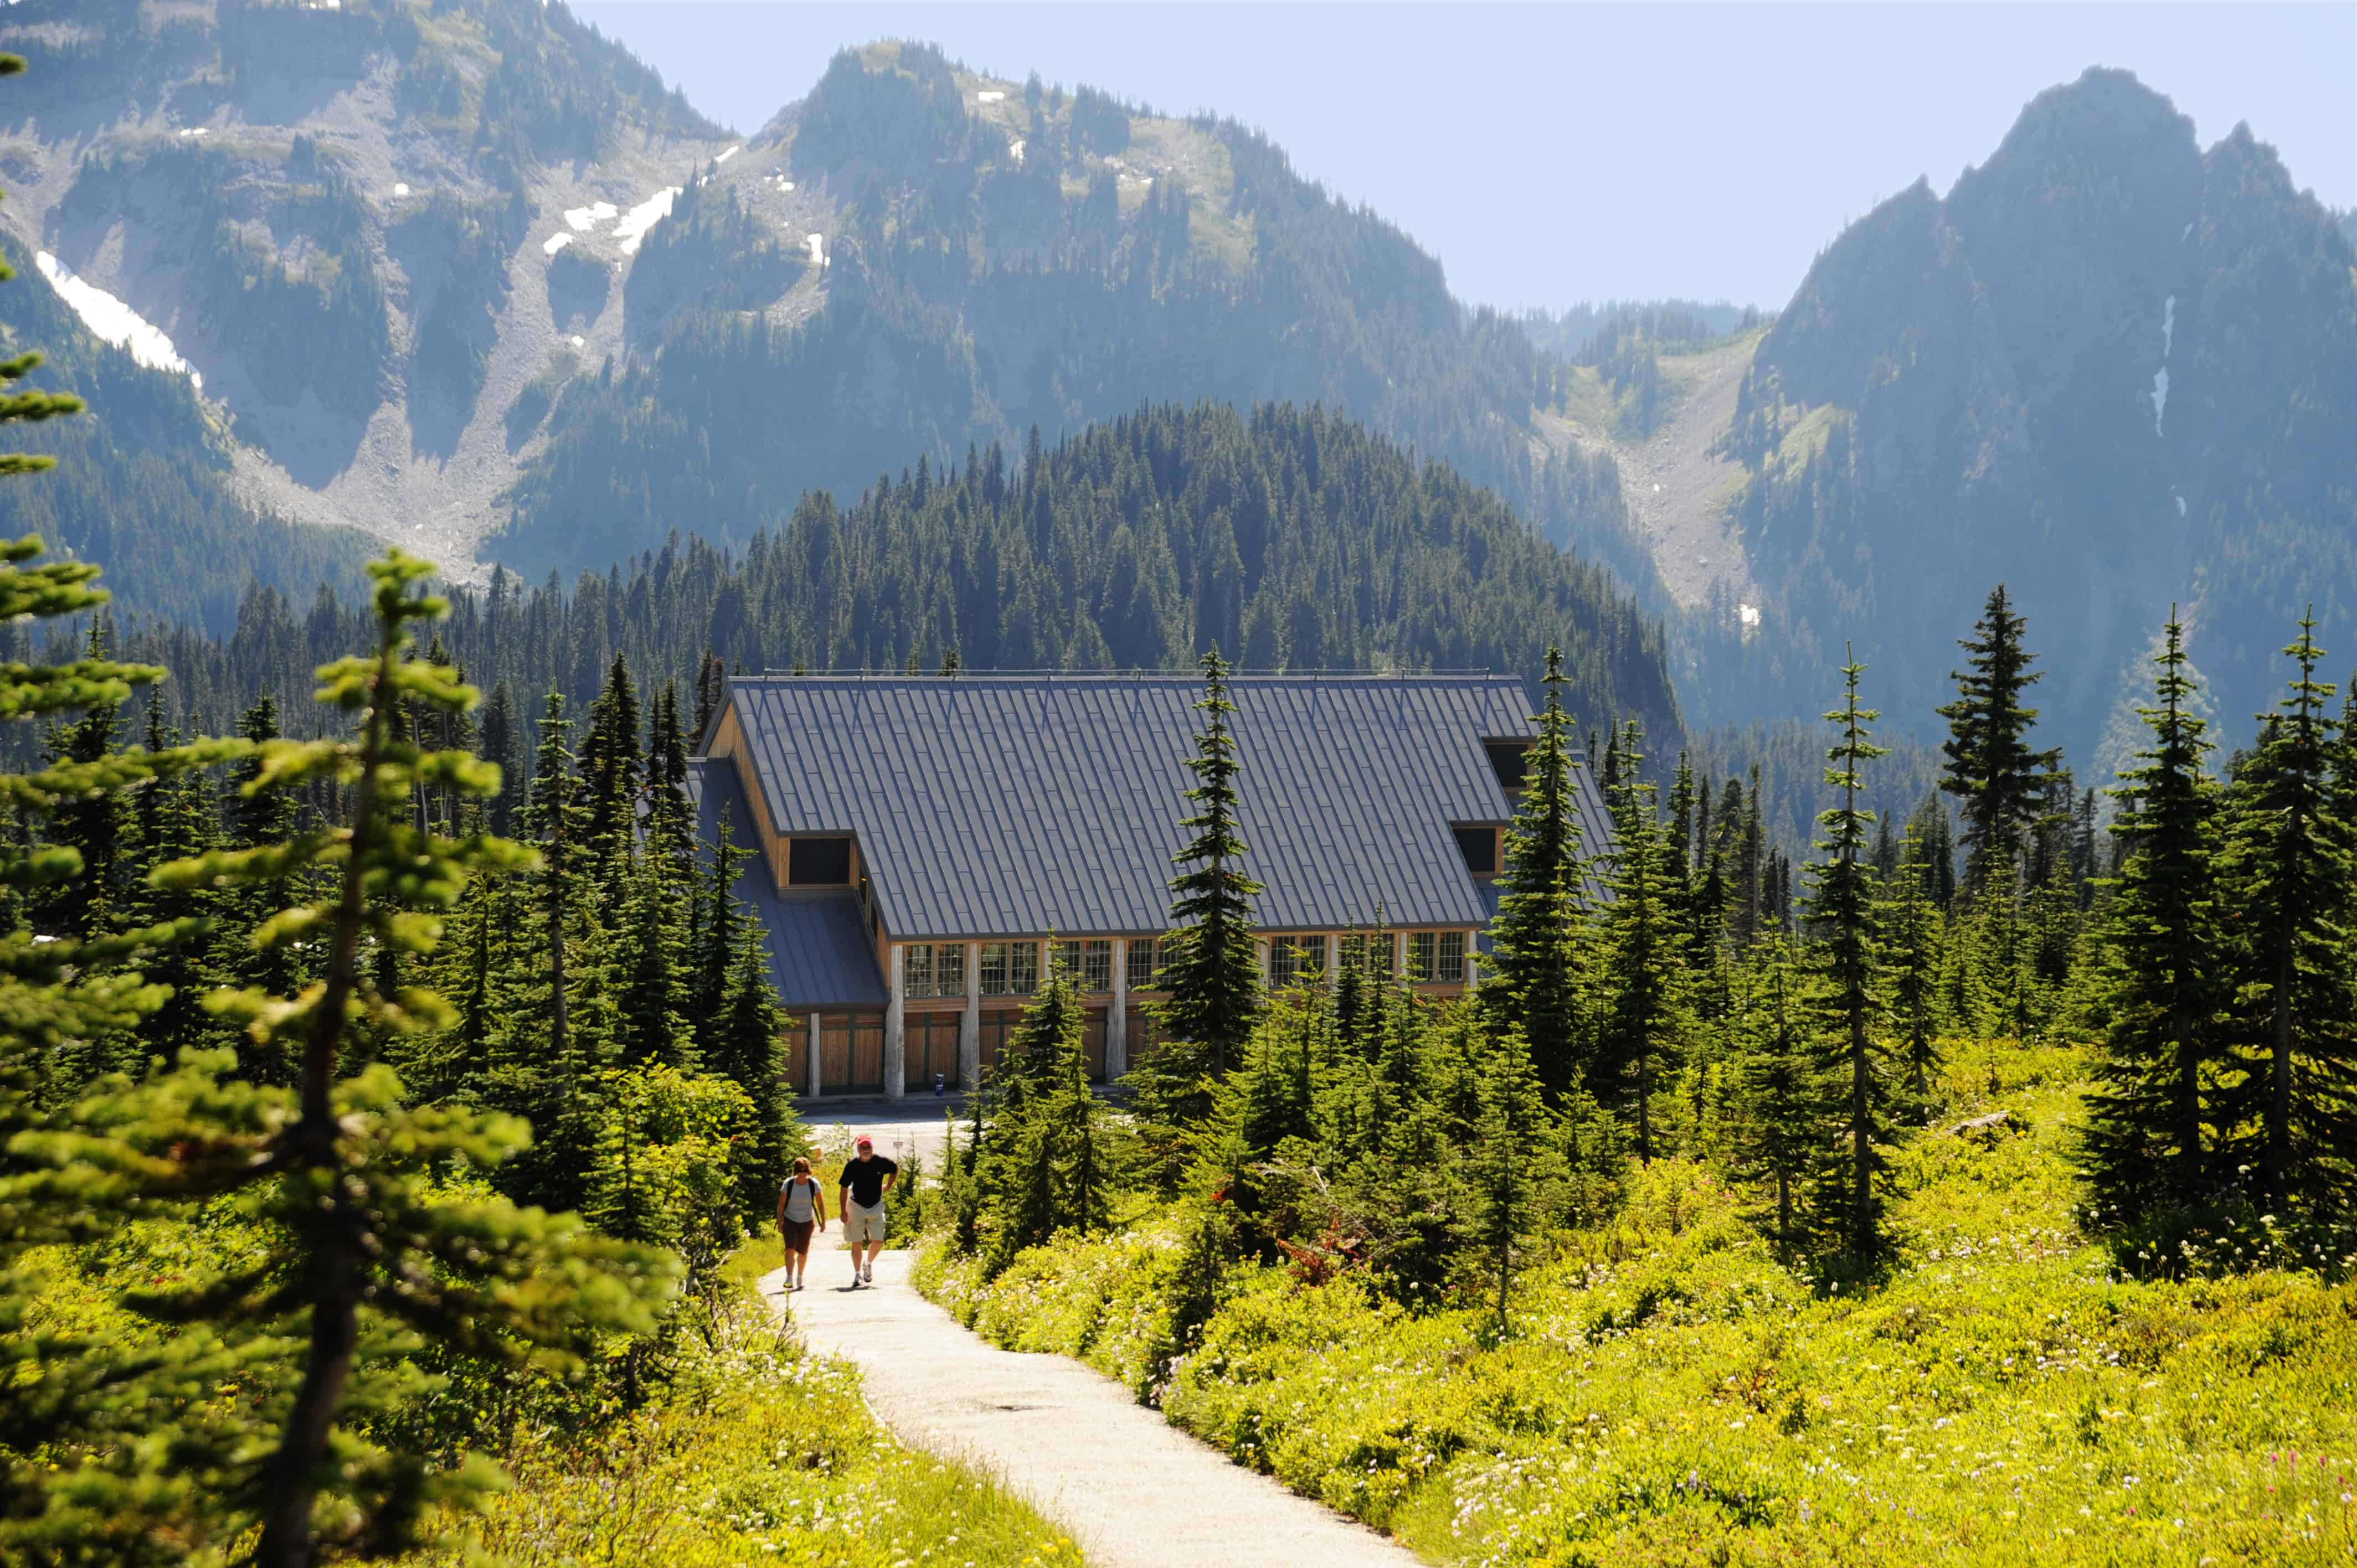 Visitor Center at Paradise, Mt Rainier National Park